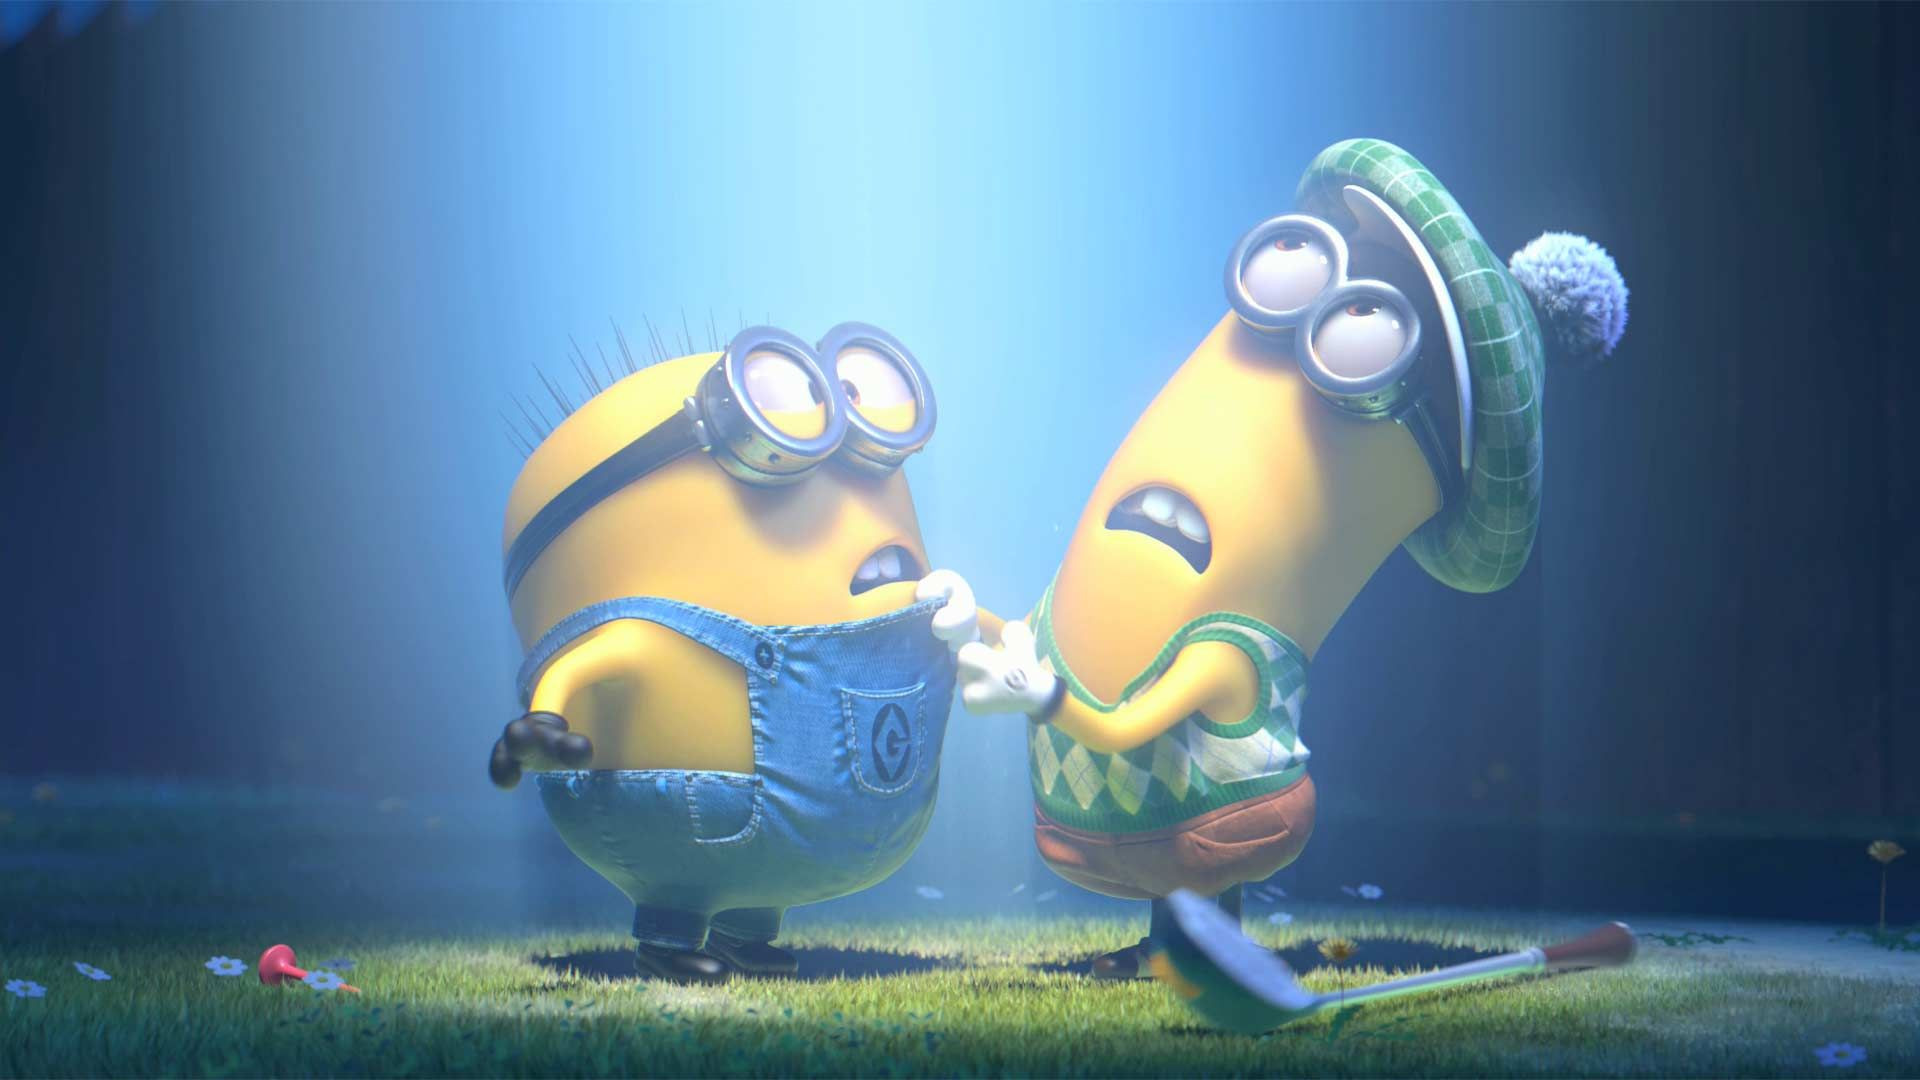 Hd wallpaper pc desktop - Free Live Desktop Wallpaper Background Free Hd Despicable Me 2 Wallpapers Desktop Backgrounds